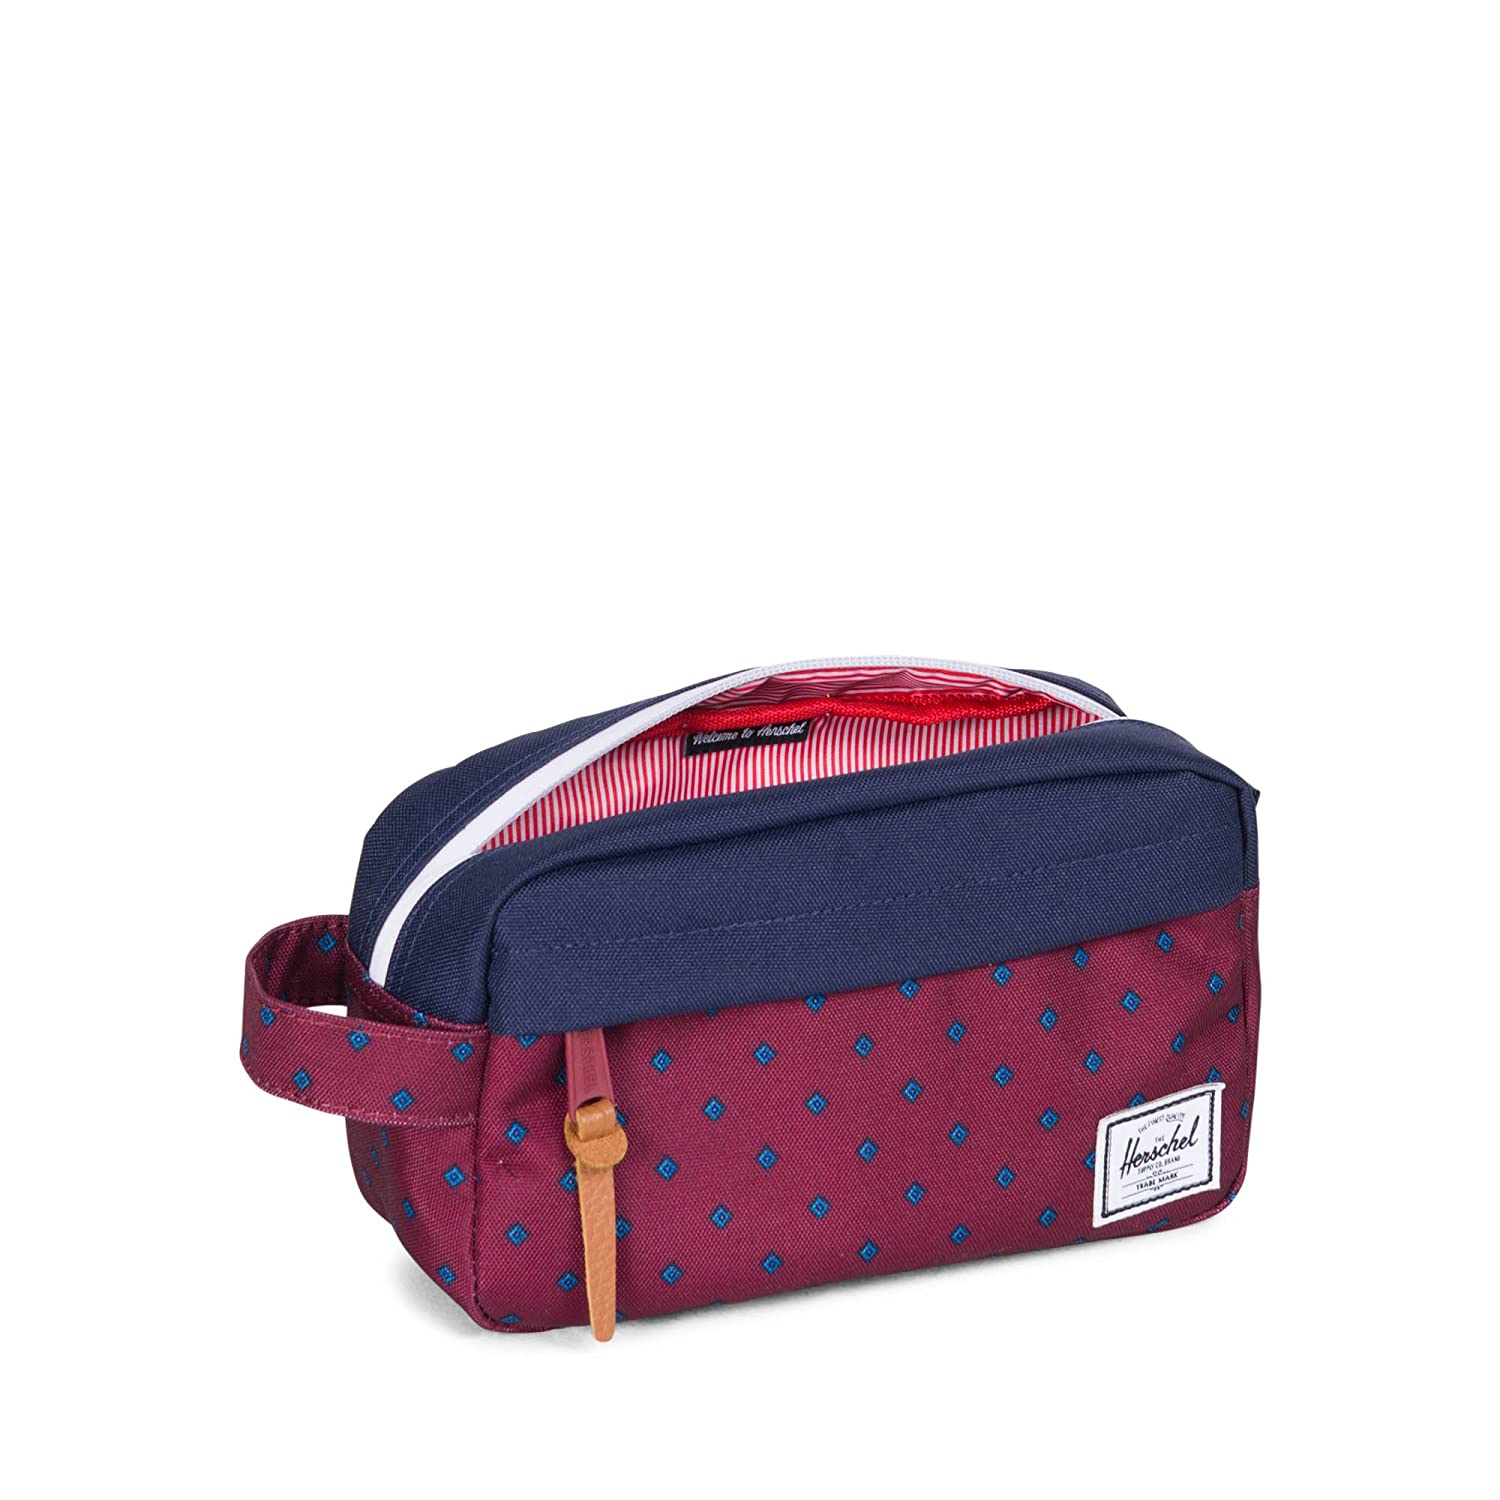 Herschel Toiletry Kit Chapter Carry on Herschel Travel Polyester 3 I 10347- 02090-OS  1540890318-38537  - €20.99 6addb3e5b3620